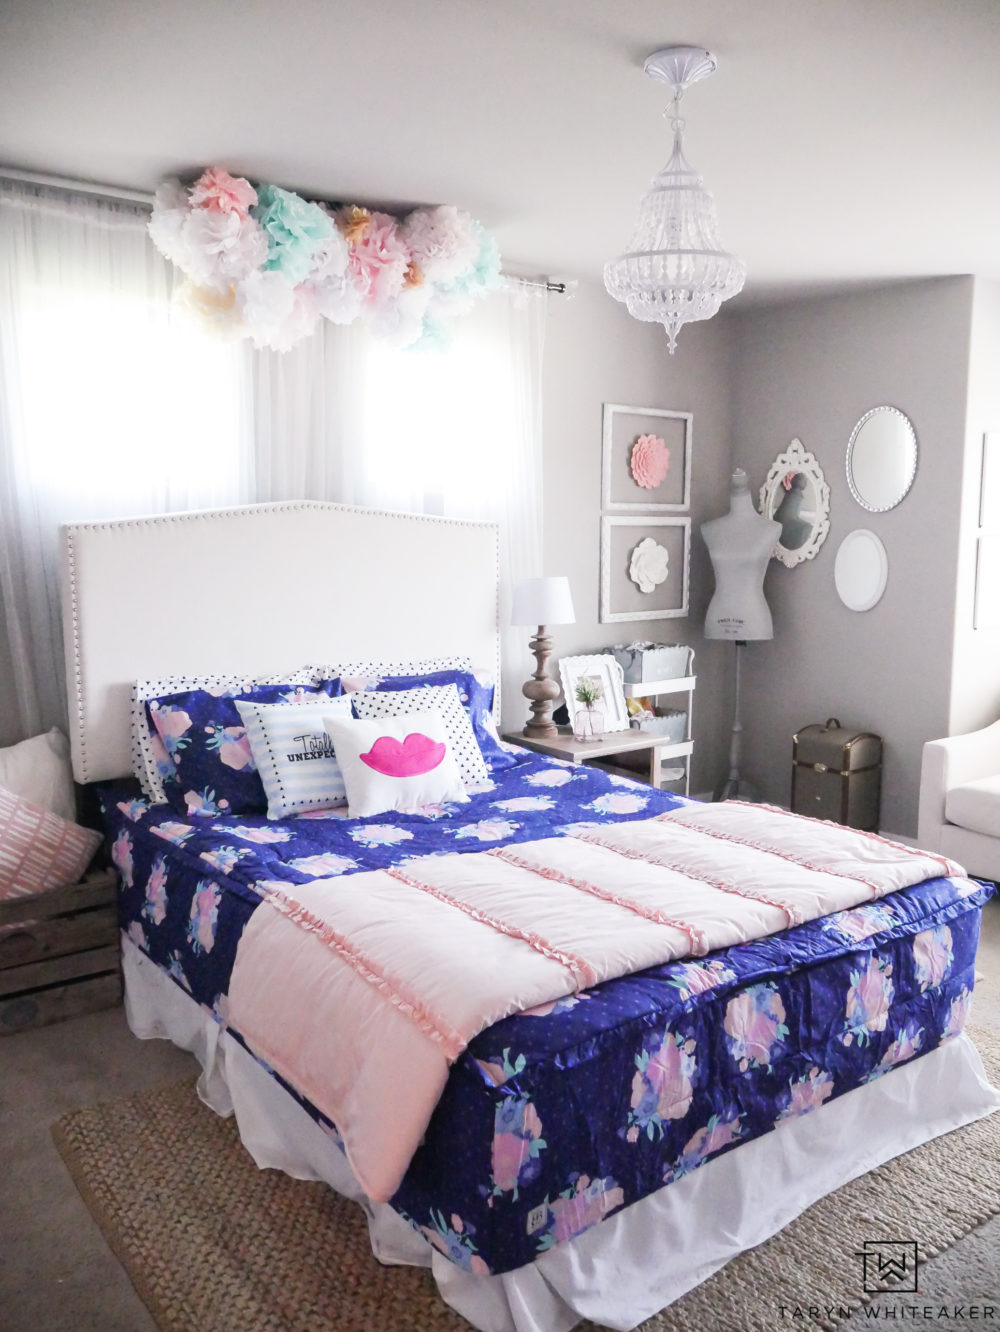 Beddy's Bedding: Cute and fun little girls room with new zipper Beddys Bedding! Just zip on and off for easy use!